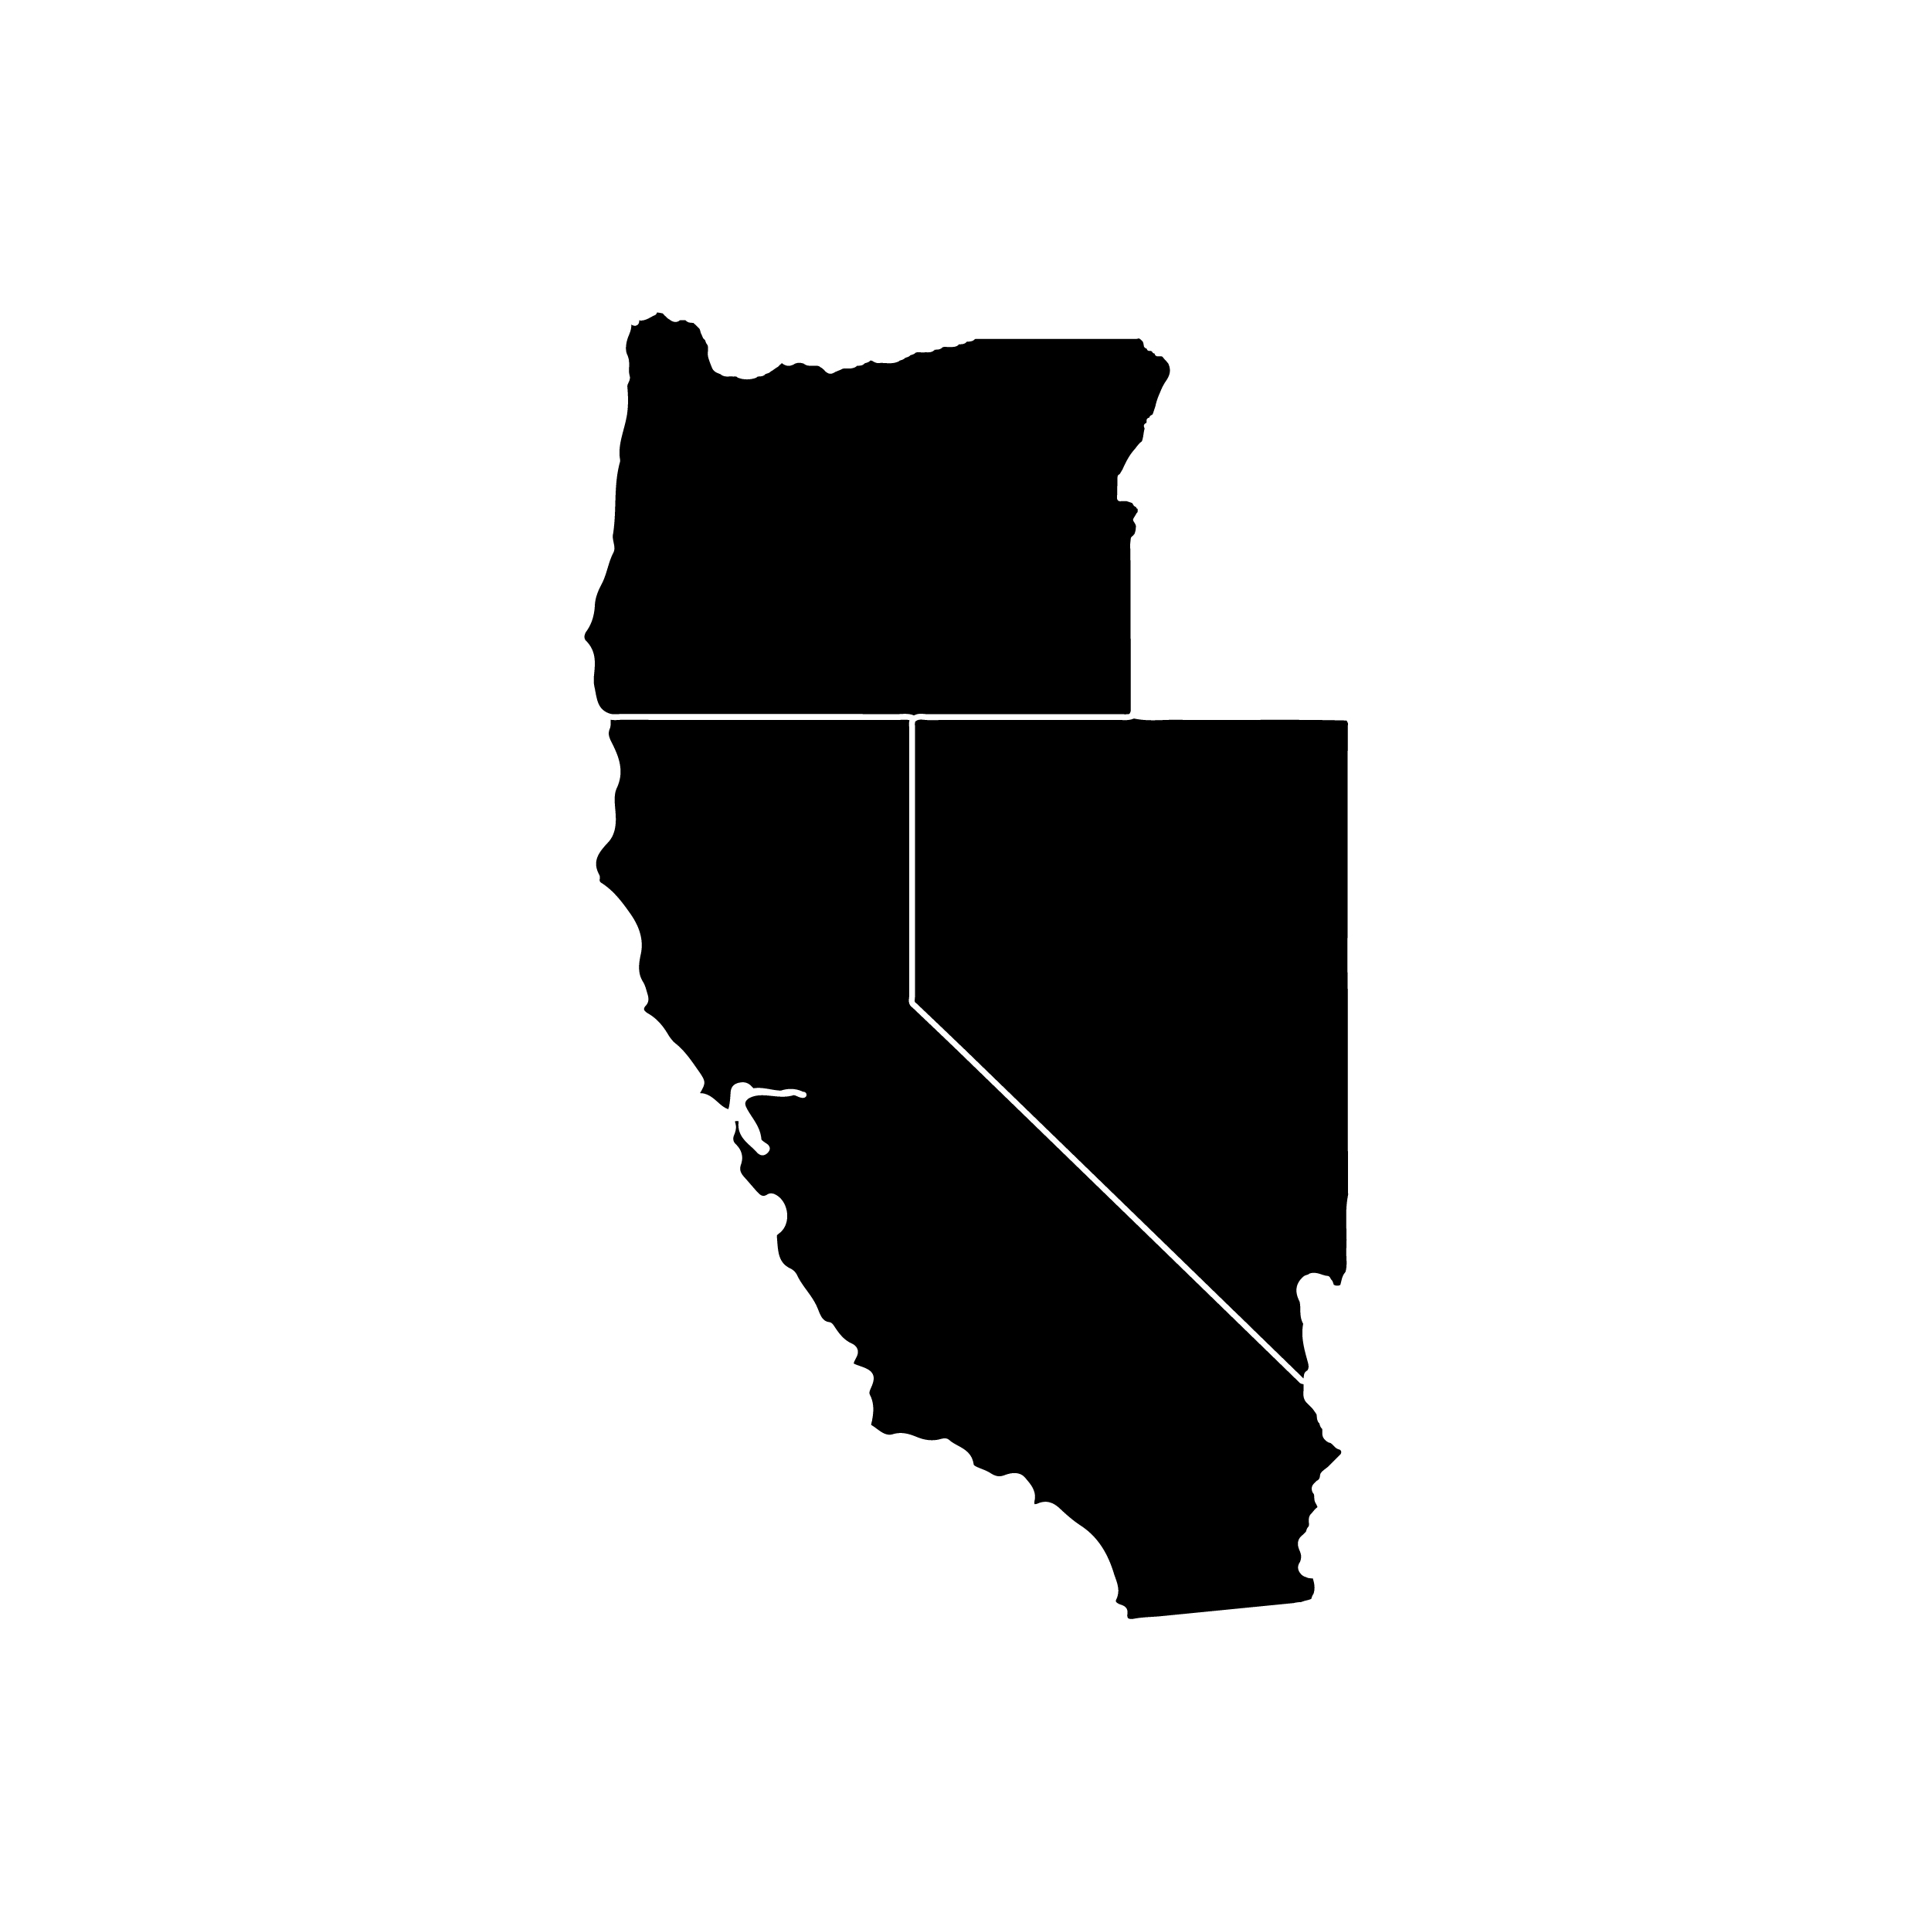 states-outlines-silhouette-vector [Converted]-02